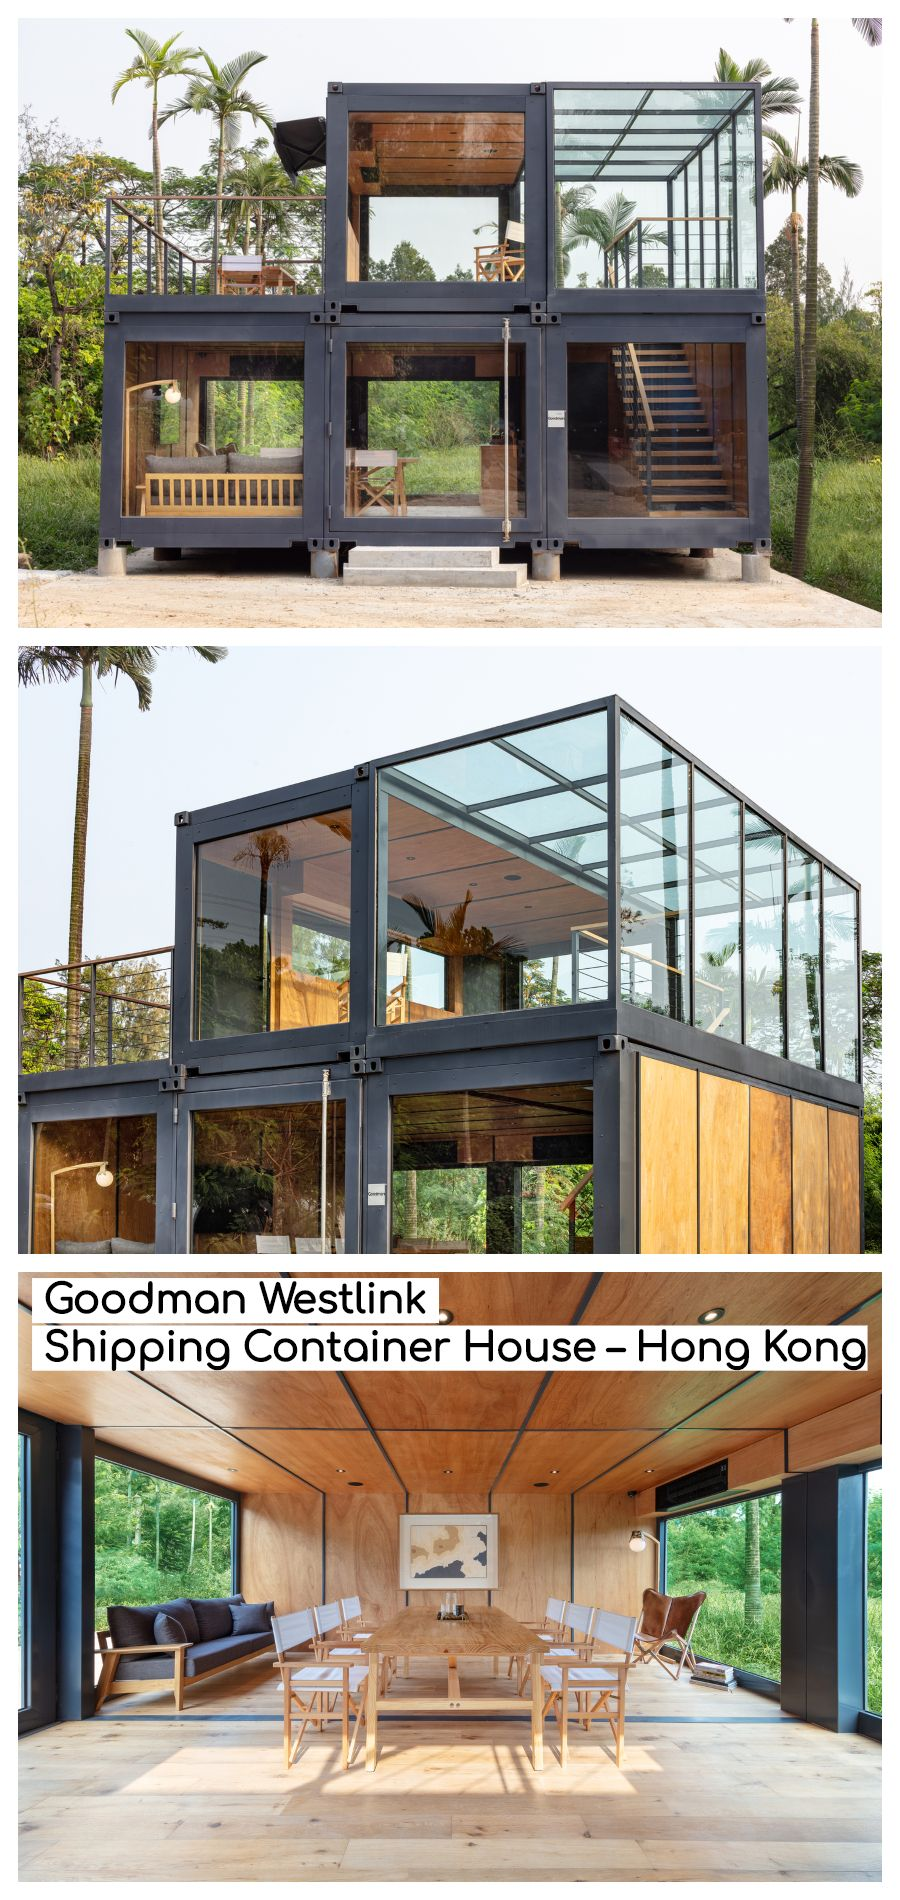 Photo of Goodman Westlink Shipping Container House – Hong Kong